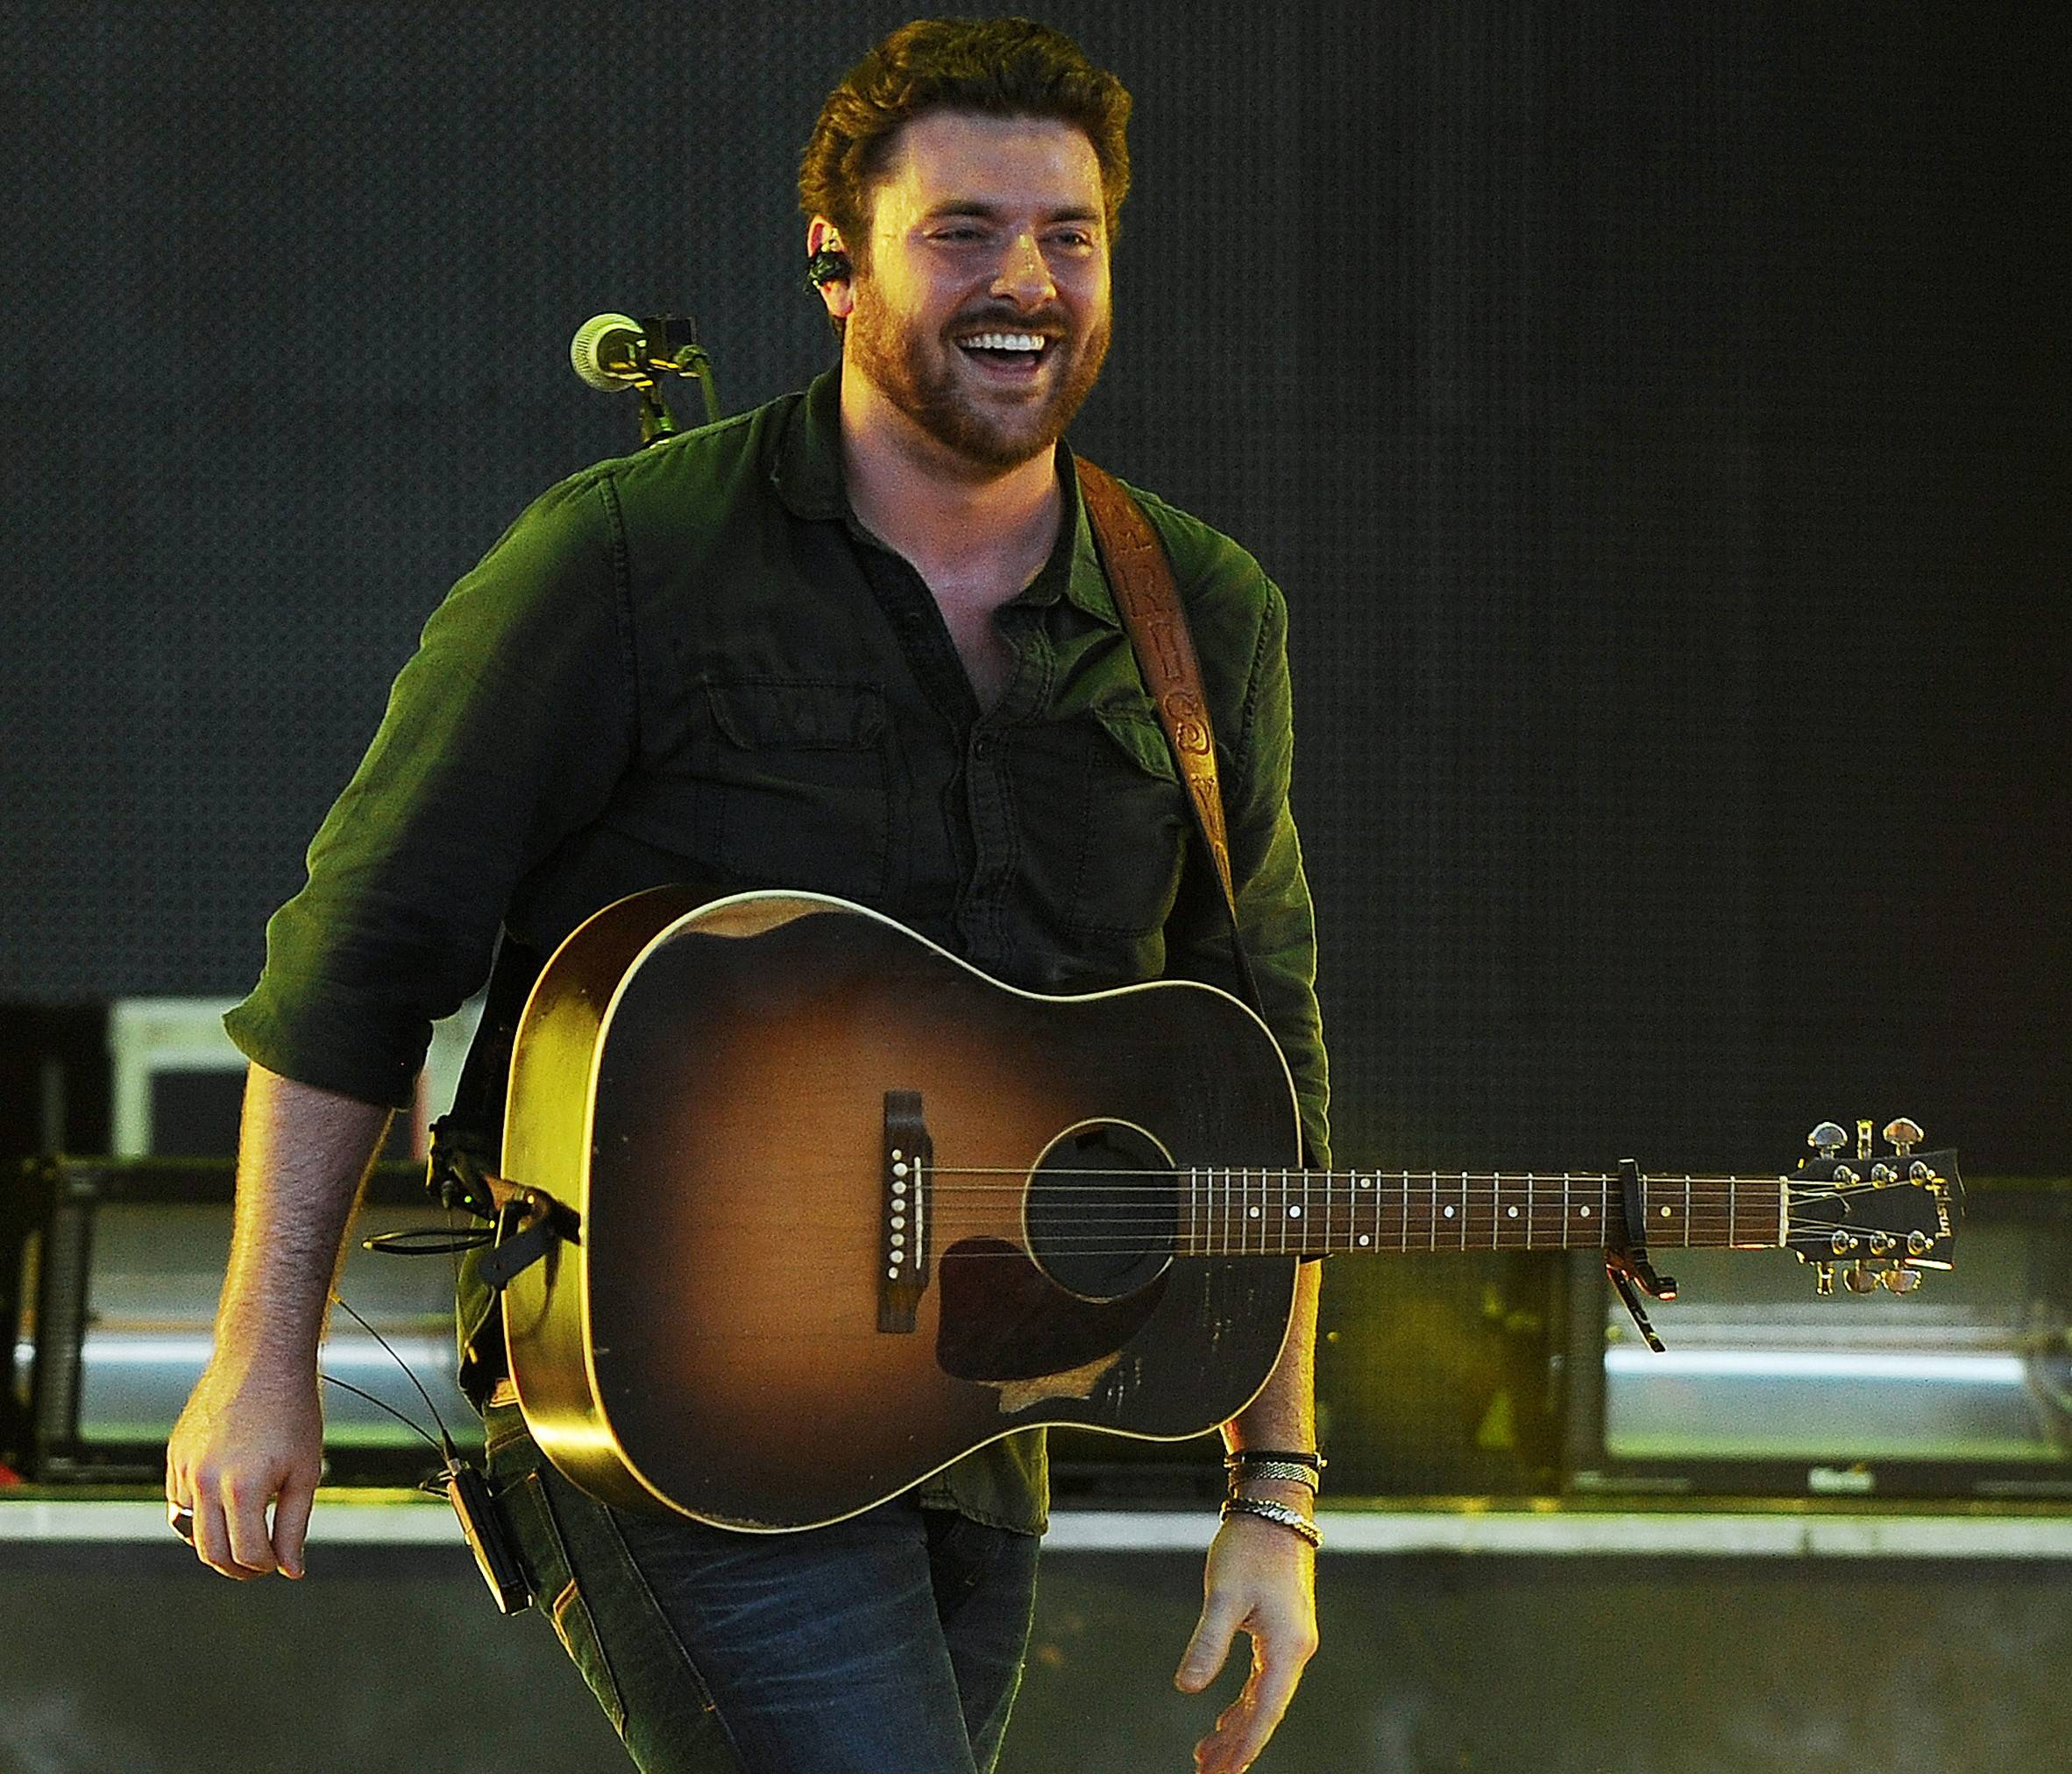 Country music star Chris Young will play the Sears Centre Arena in Hoffman Estates Jan. 20.